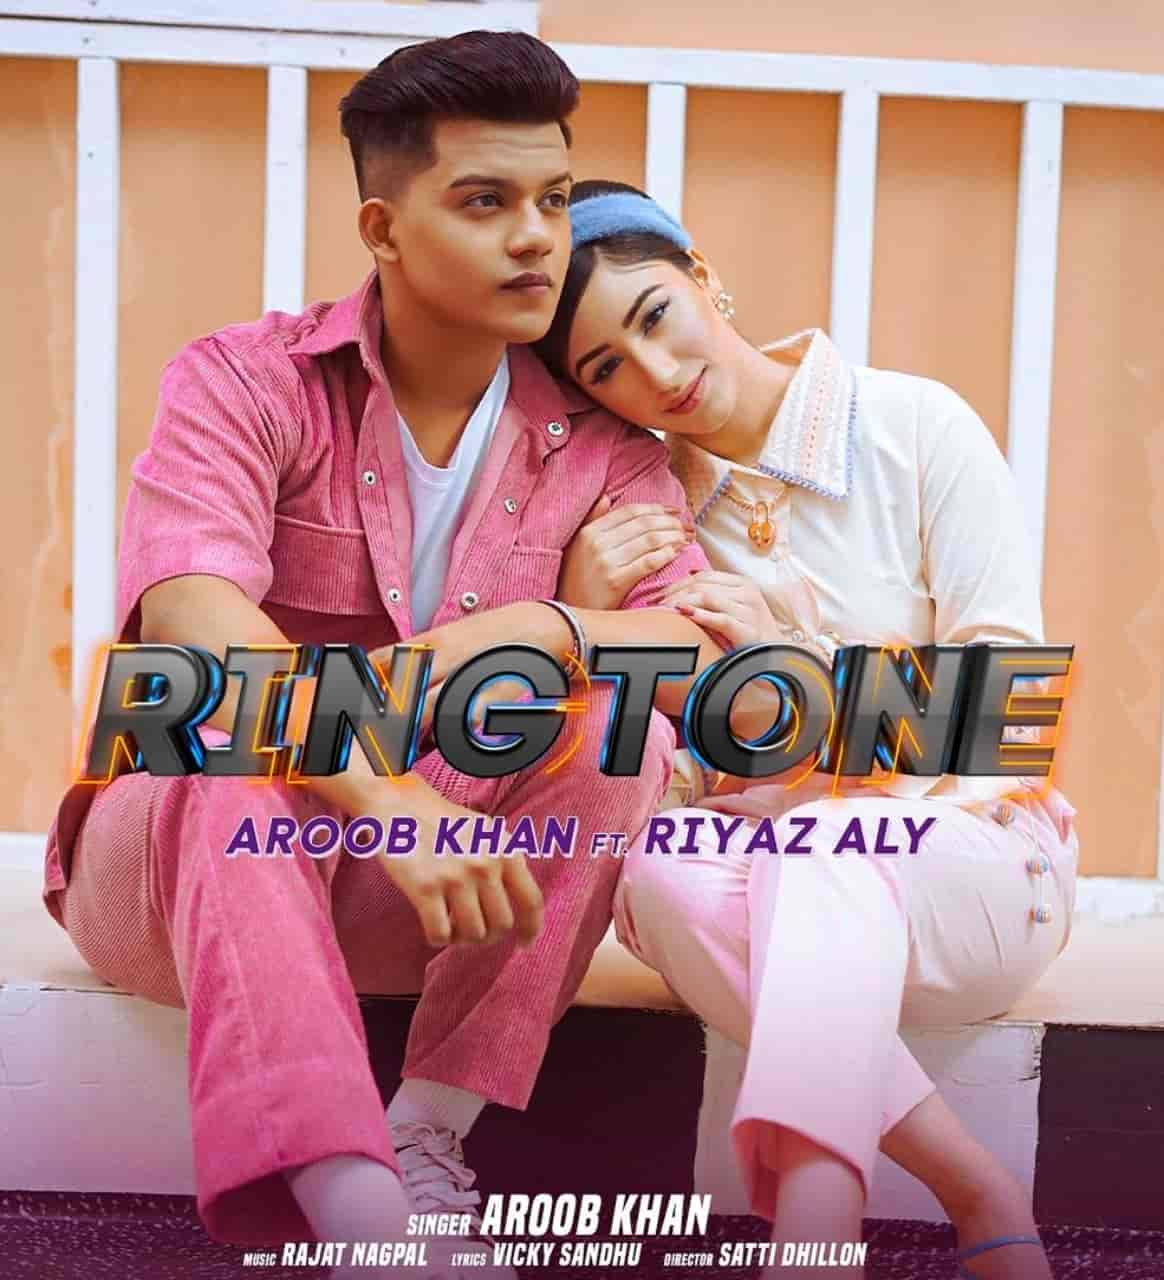 Ringtone Song Image Features Aroob Khan And Riyaz Aly